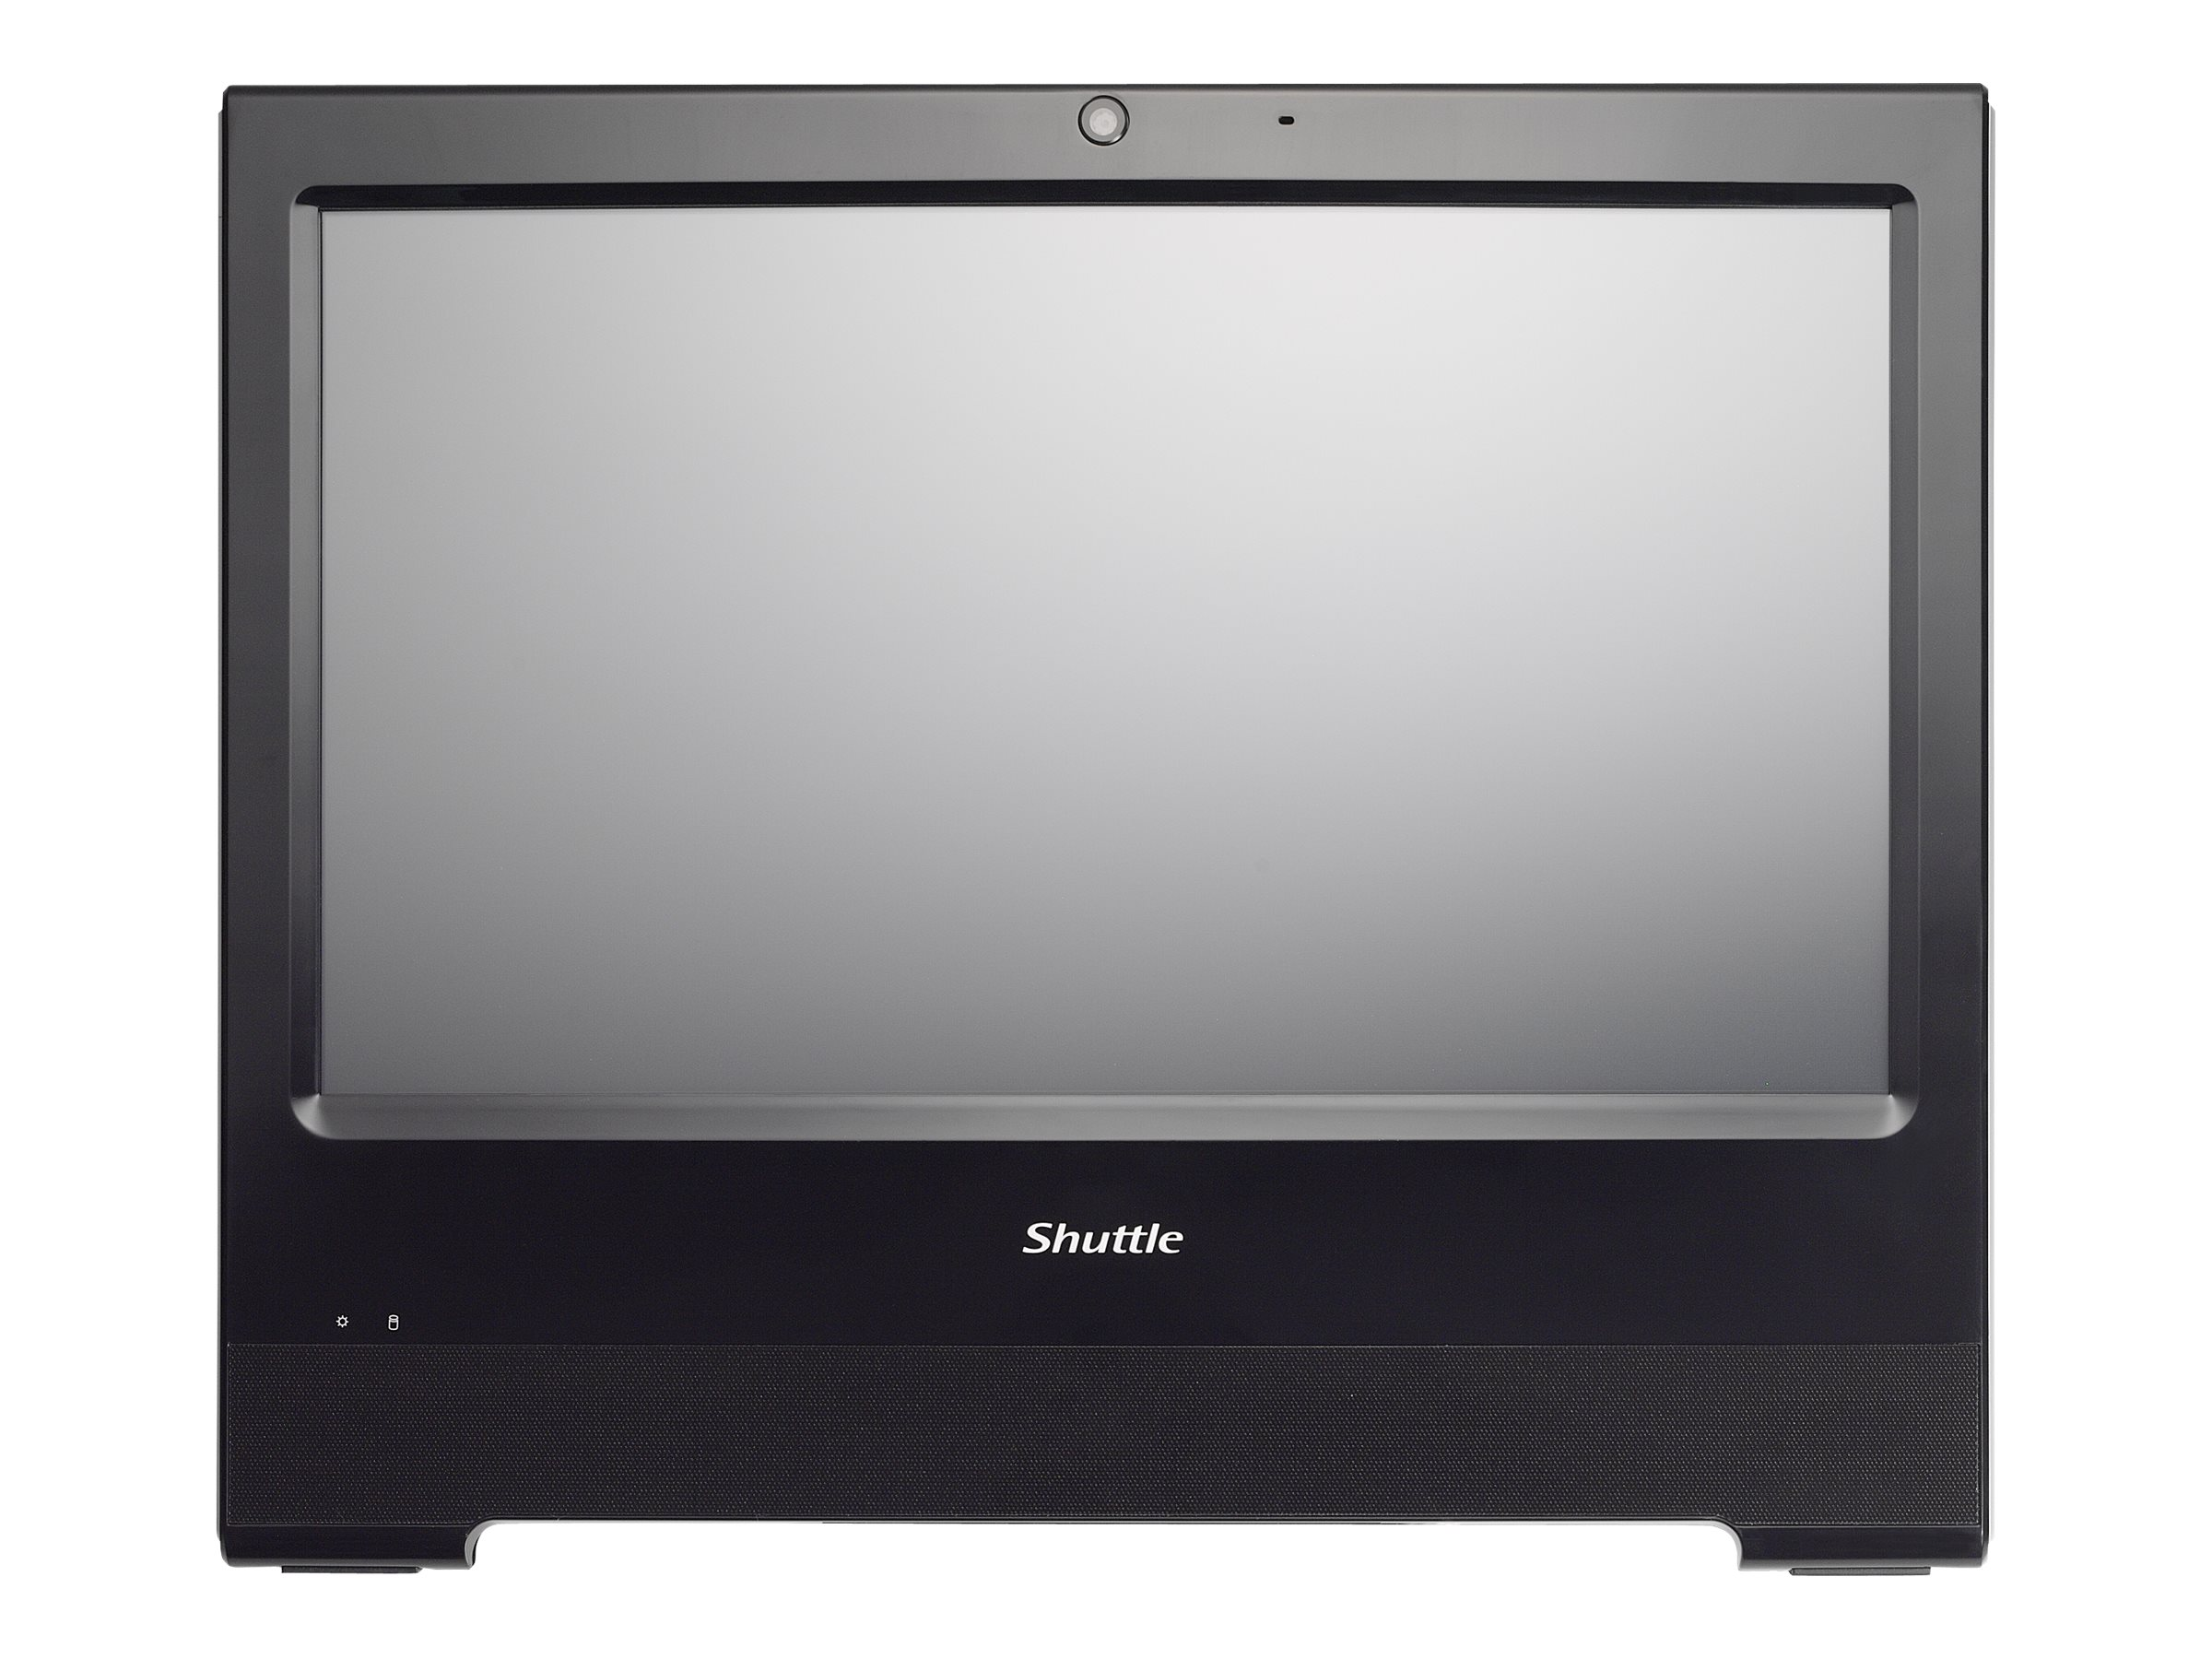 Shuttle X50V4 - Barebone - All-in-One (Komplettlösung) - 1 x Celeron 2957U / 1.4 GHz - HD Graphics - GigE